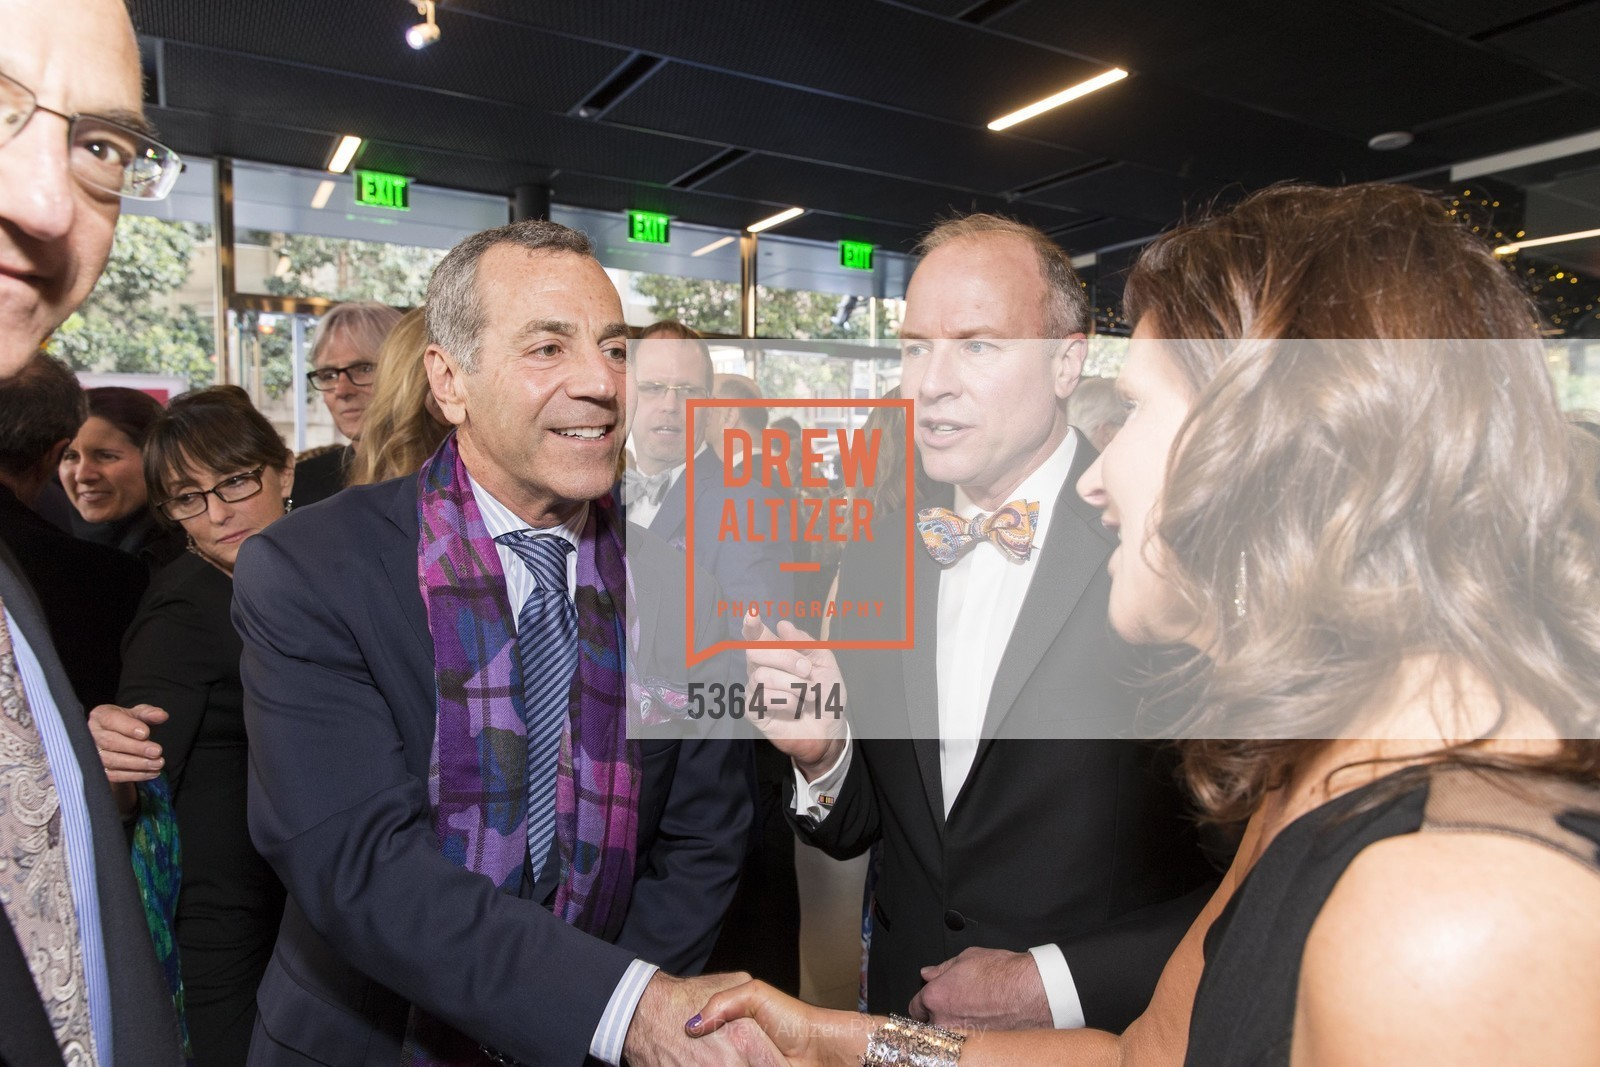 Jeff Stern, Don Derheim, SFJAZZ Gala 2015 Honors Joni Mitchell with Lifetime Achievement Award, US, May 8th, 2015,Drew Altizer, Drew Altizer Photography, full-service agency, private events, San Francisco photographer, photographer california